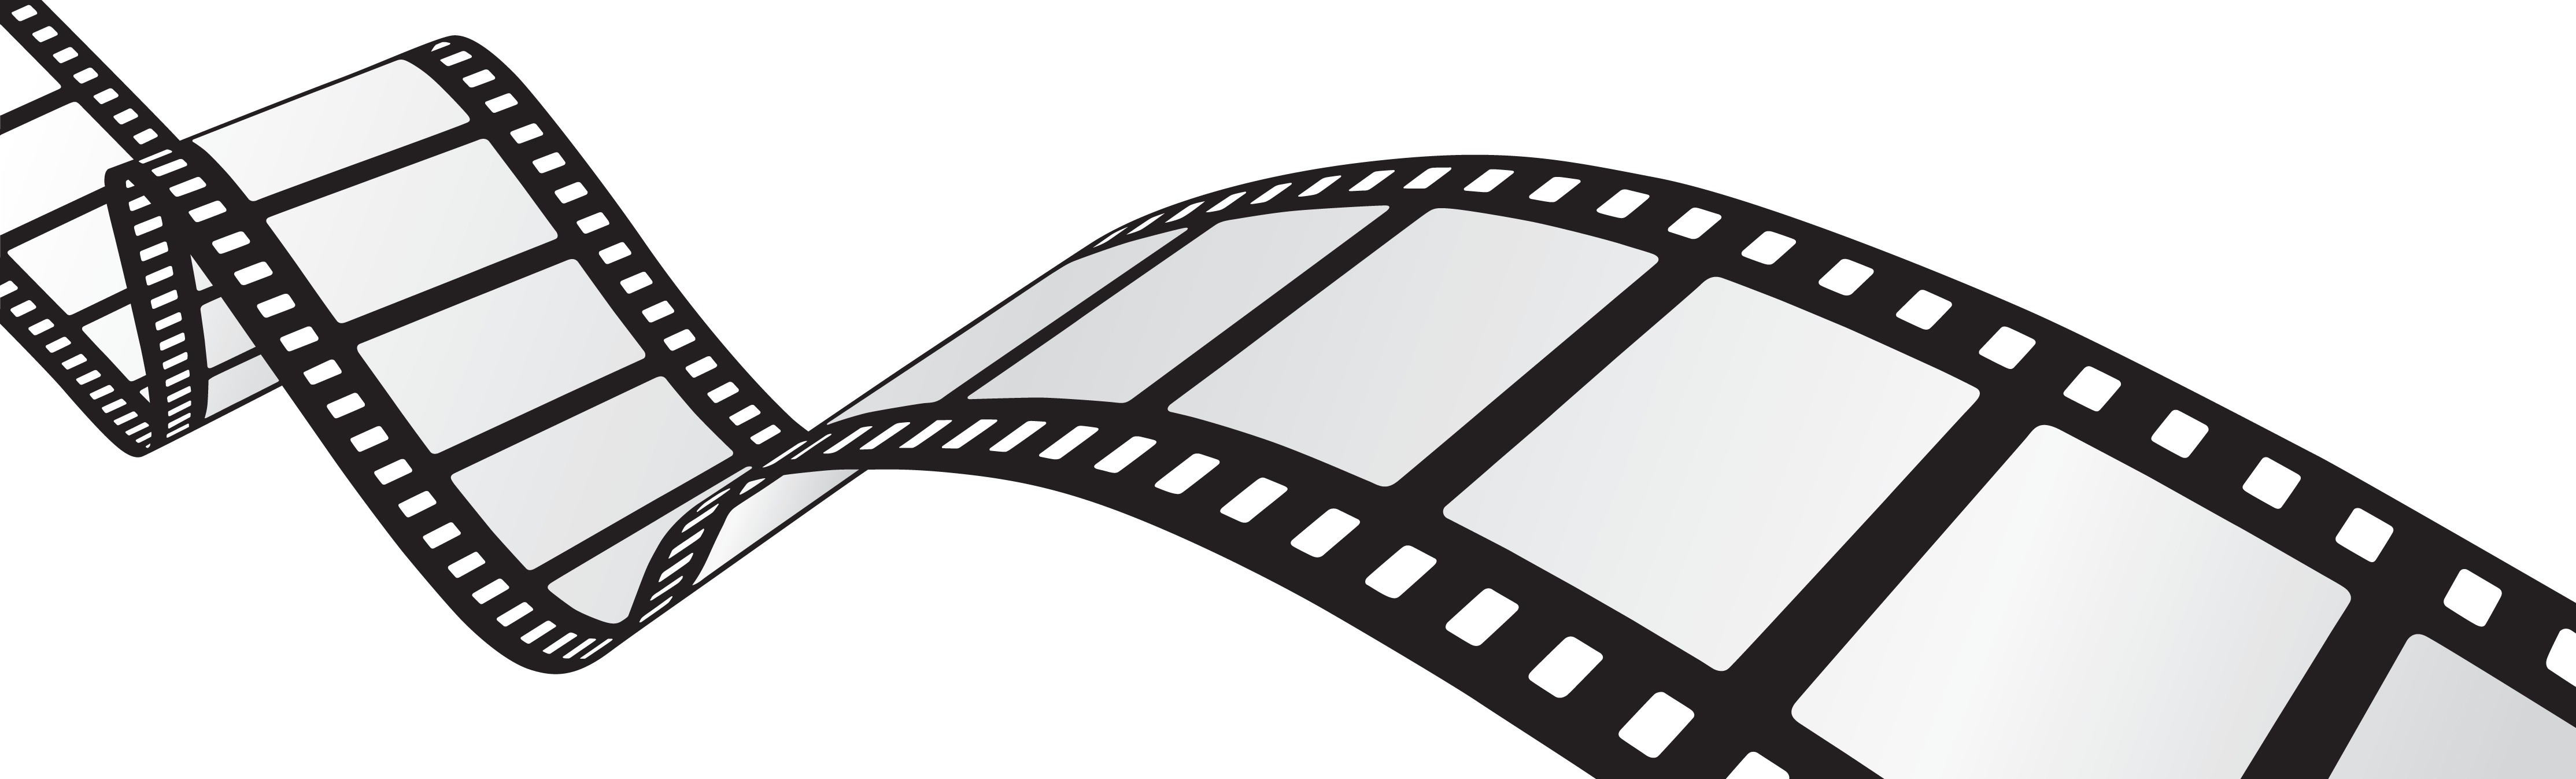 Movie Reel PNG Transparent Movie Reel.PNG Images..